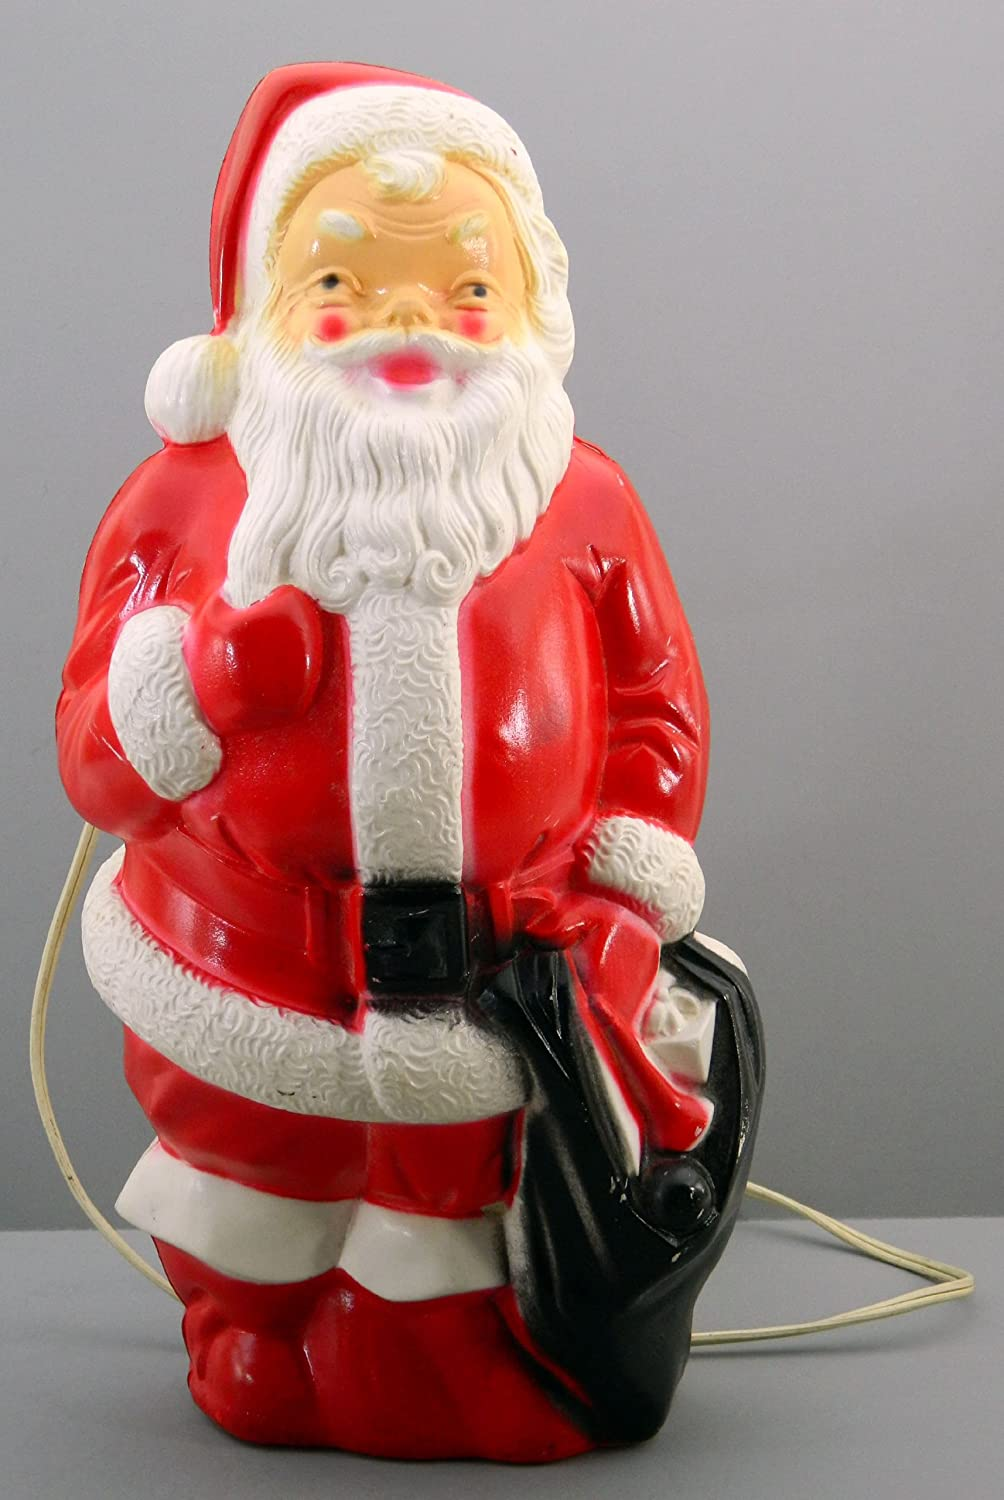 amazoncom light up santa claus empire 1968 blow mold vintage christmas decoration home kitchen